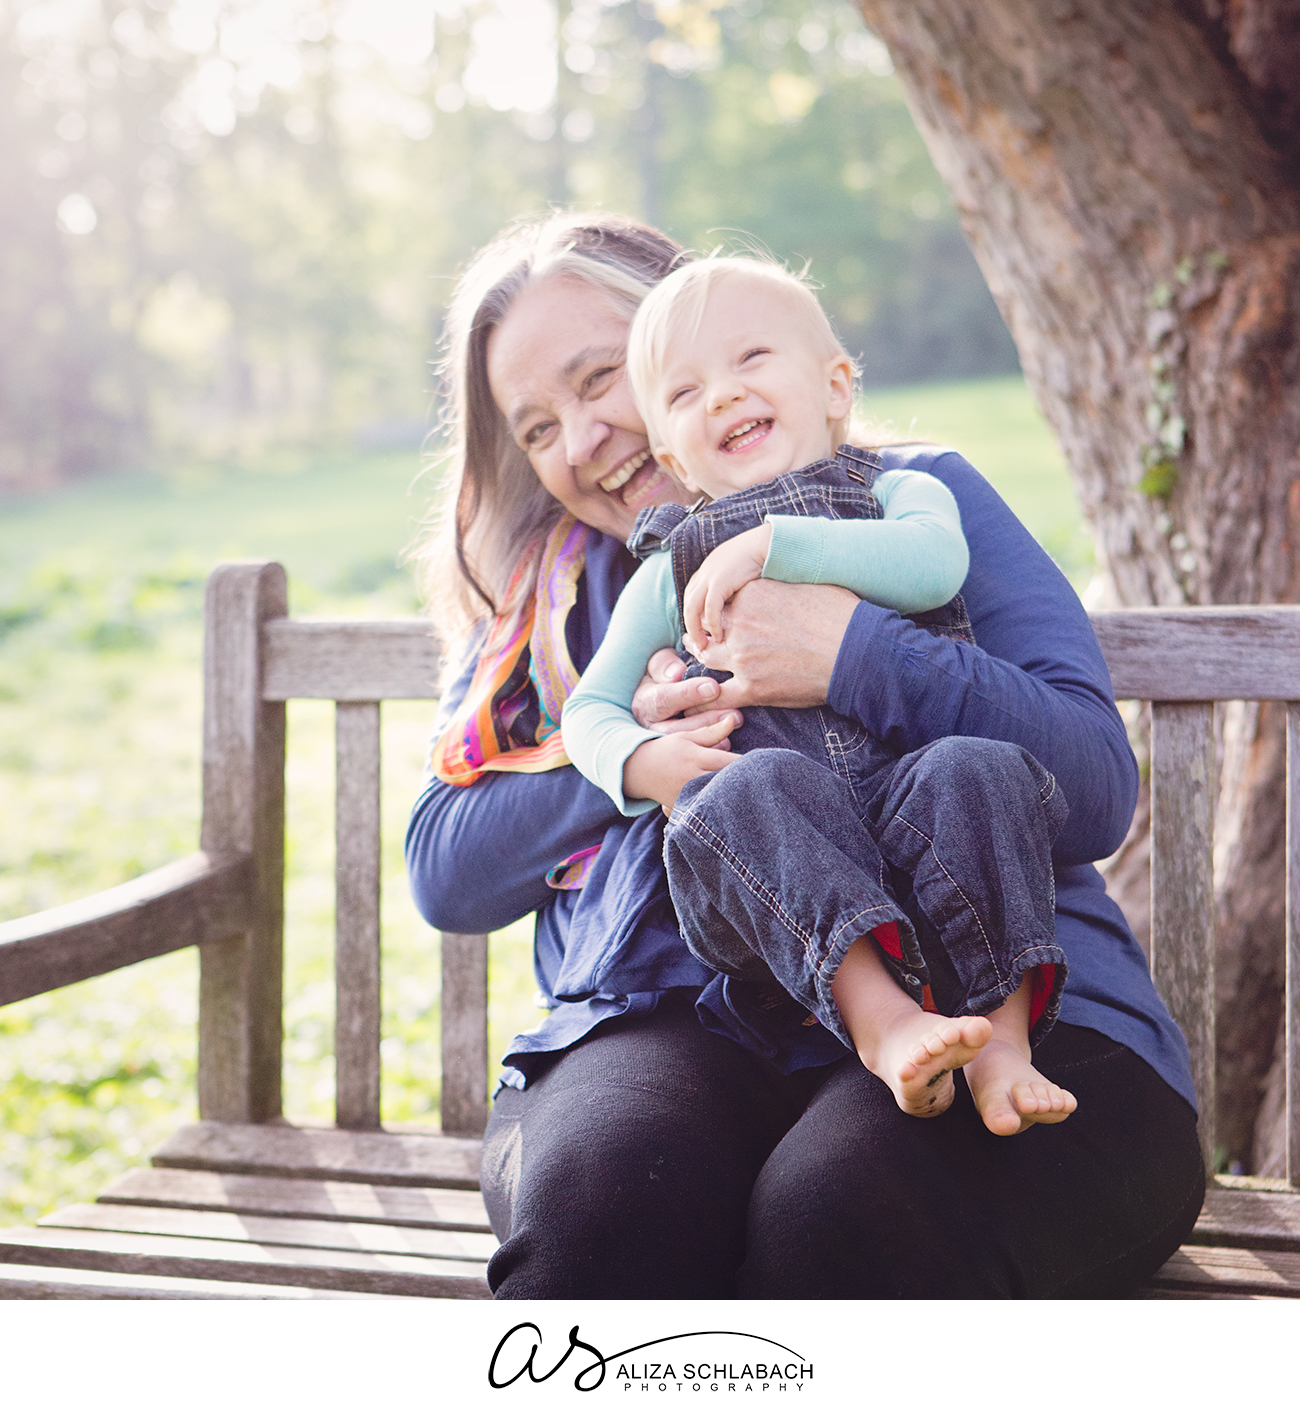 Sundrenched photo of a grandma holding her grandson and laughing on a bench